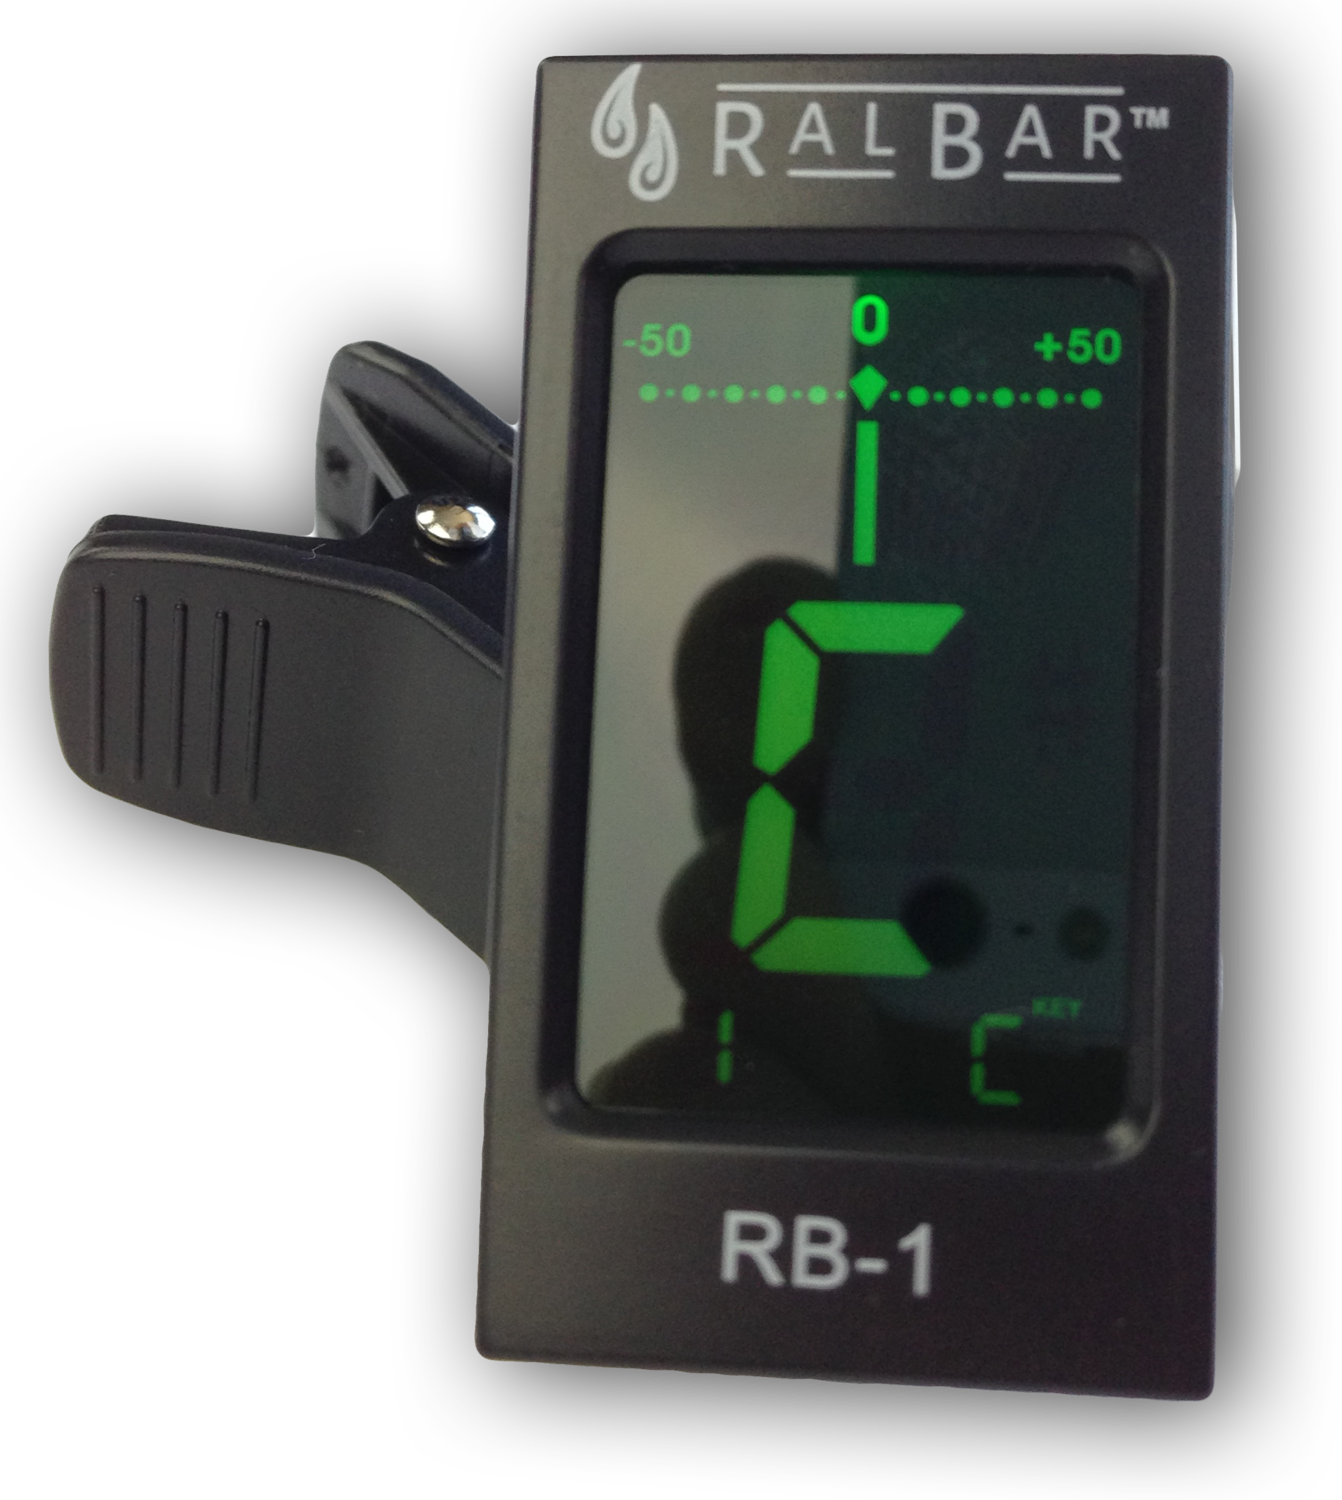 RB-1 RalBar™ Tuner